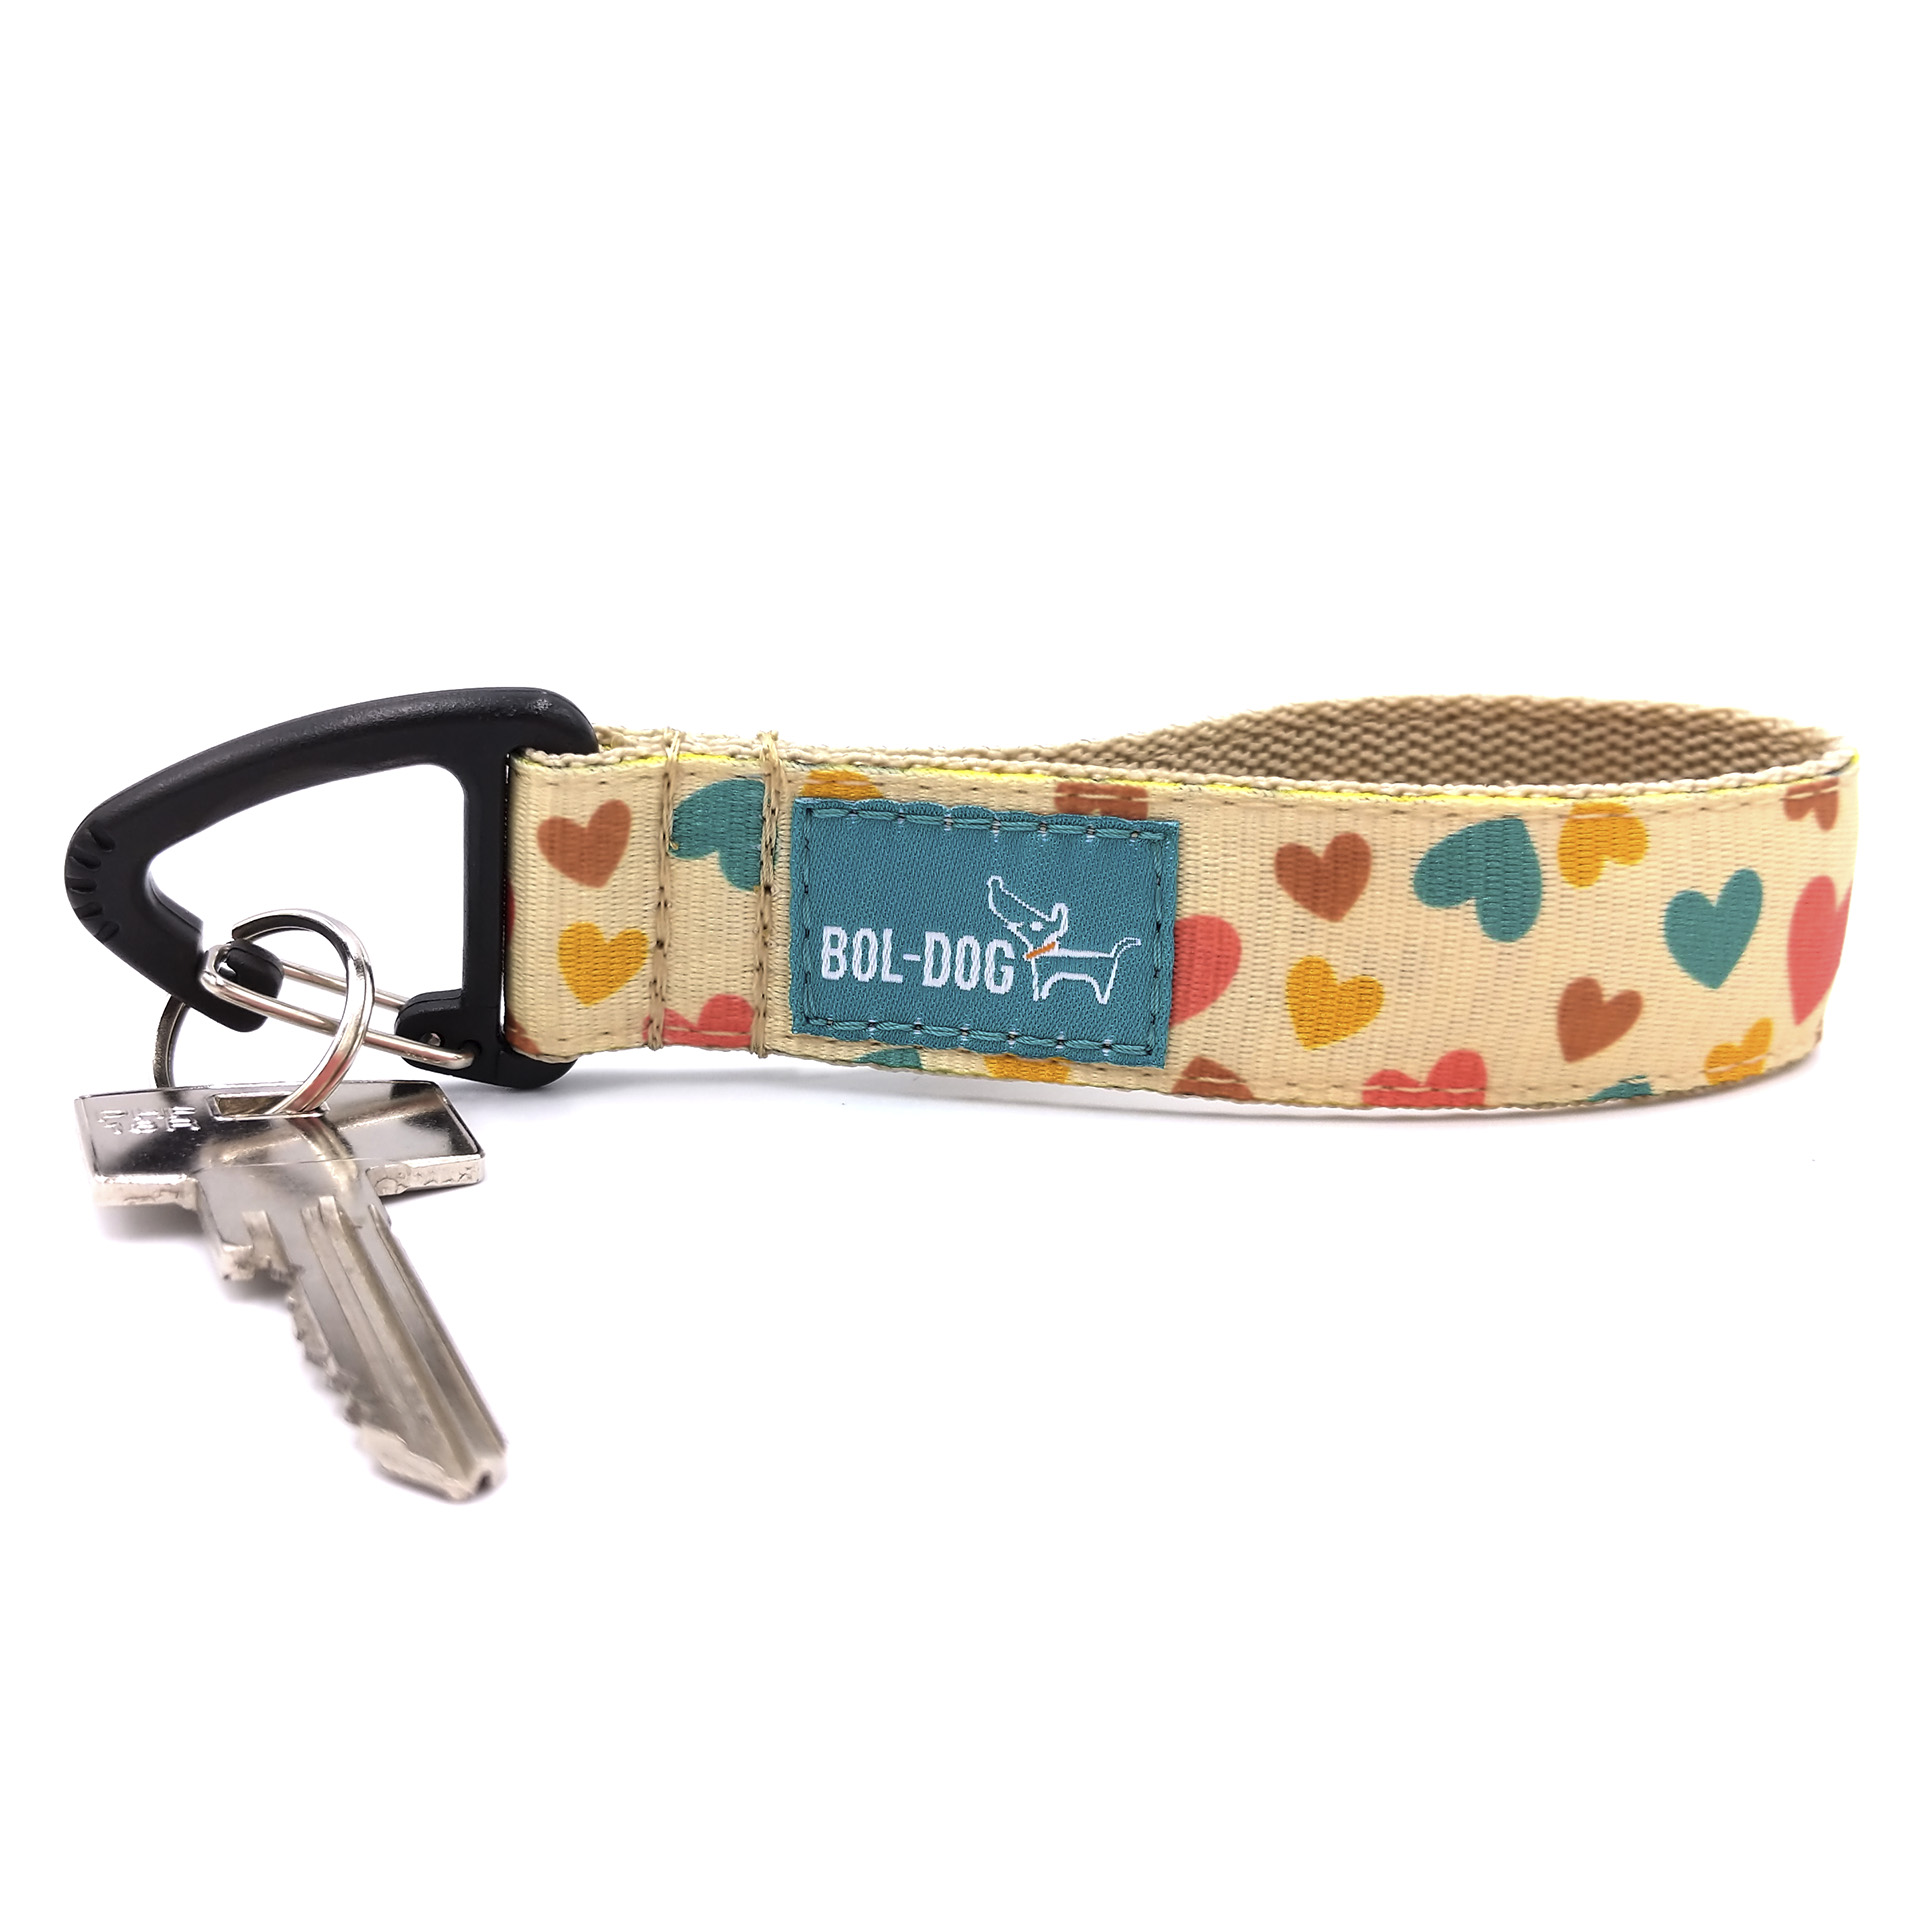 Devotion key holder